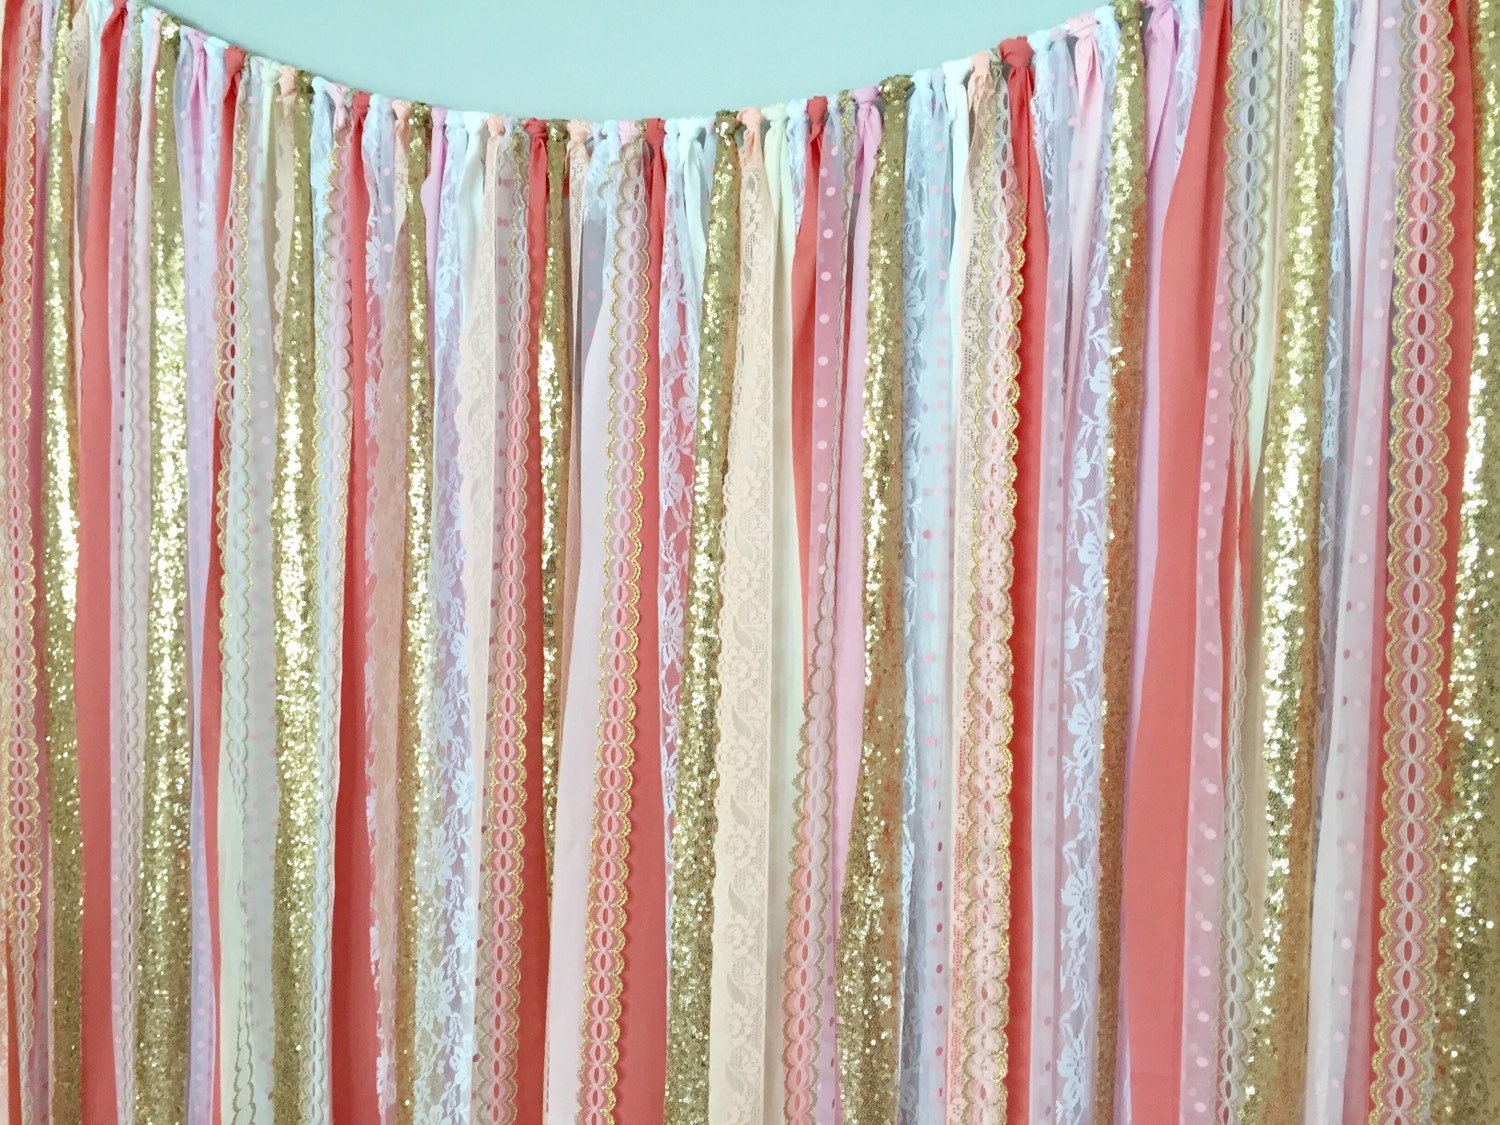 Coral Pink & Gold Sparkle Sequin Fabric Backdrop by ohMYcharley